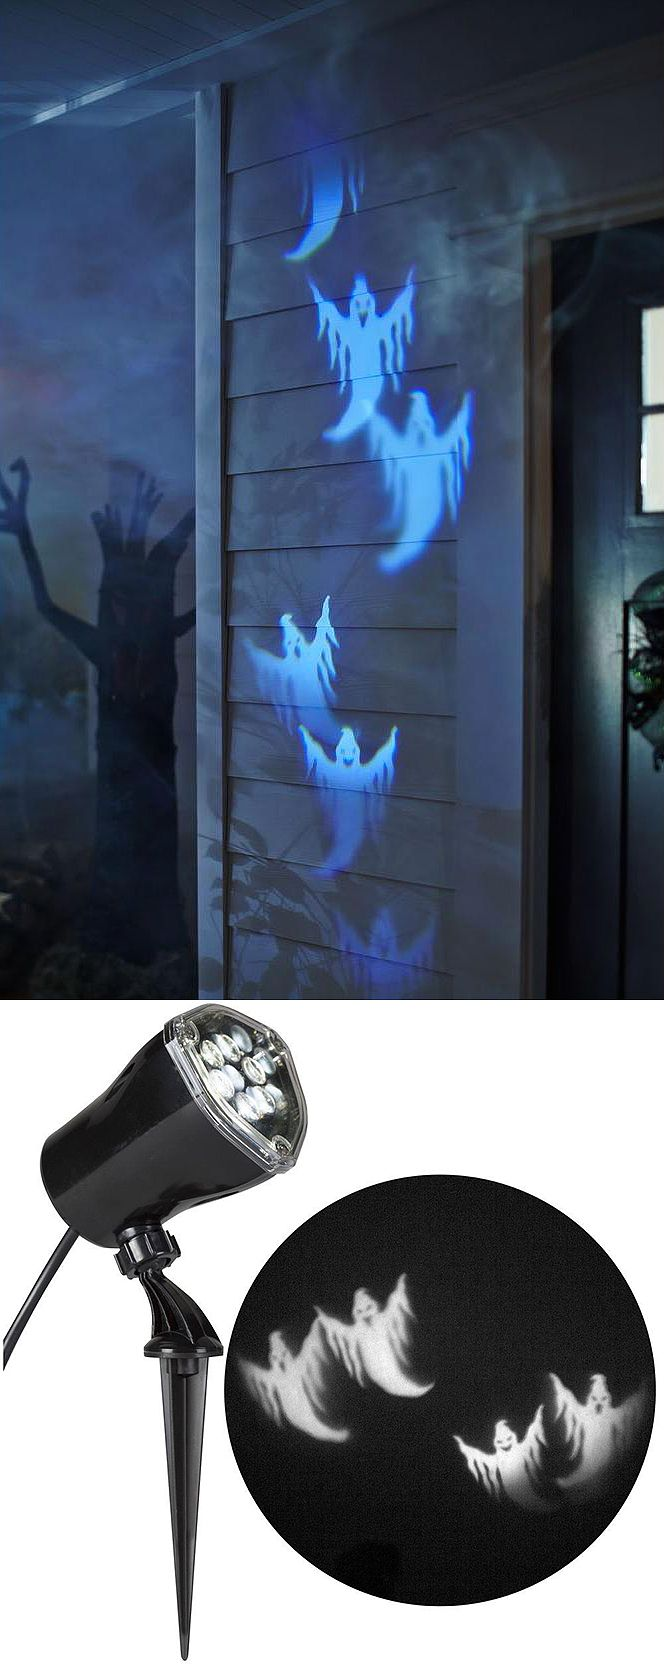 Liven up your Halloween decor with LightShow Projection scenes featuring ghosts.